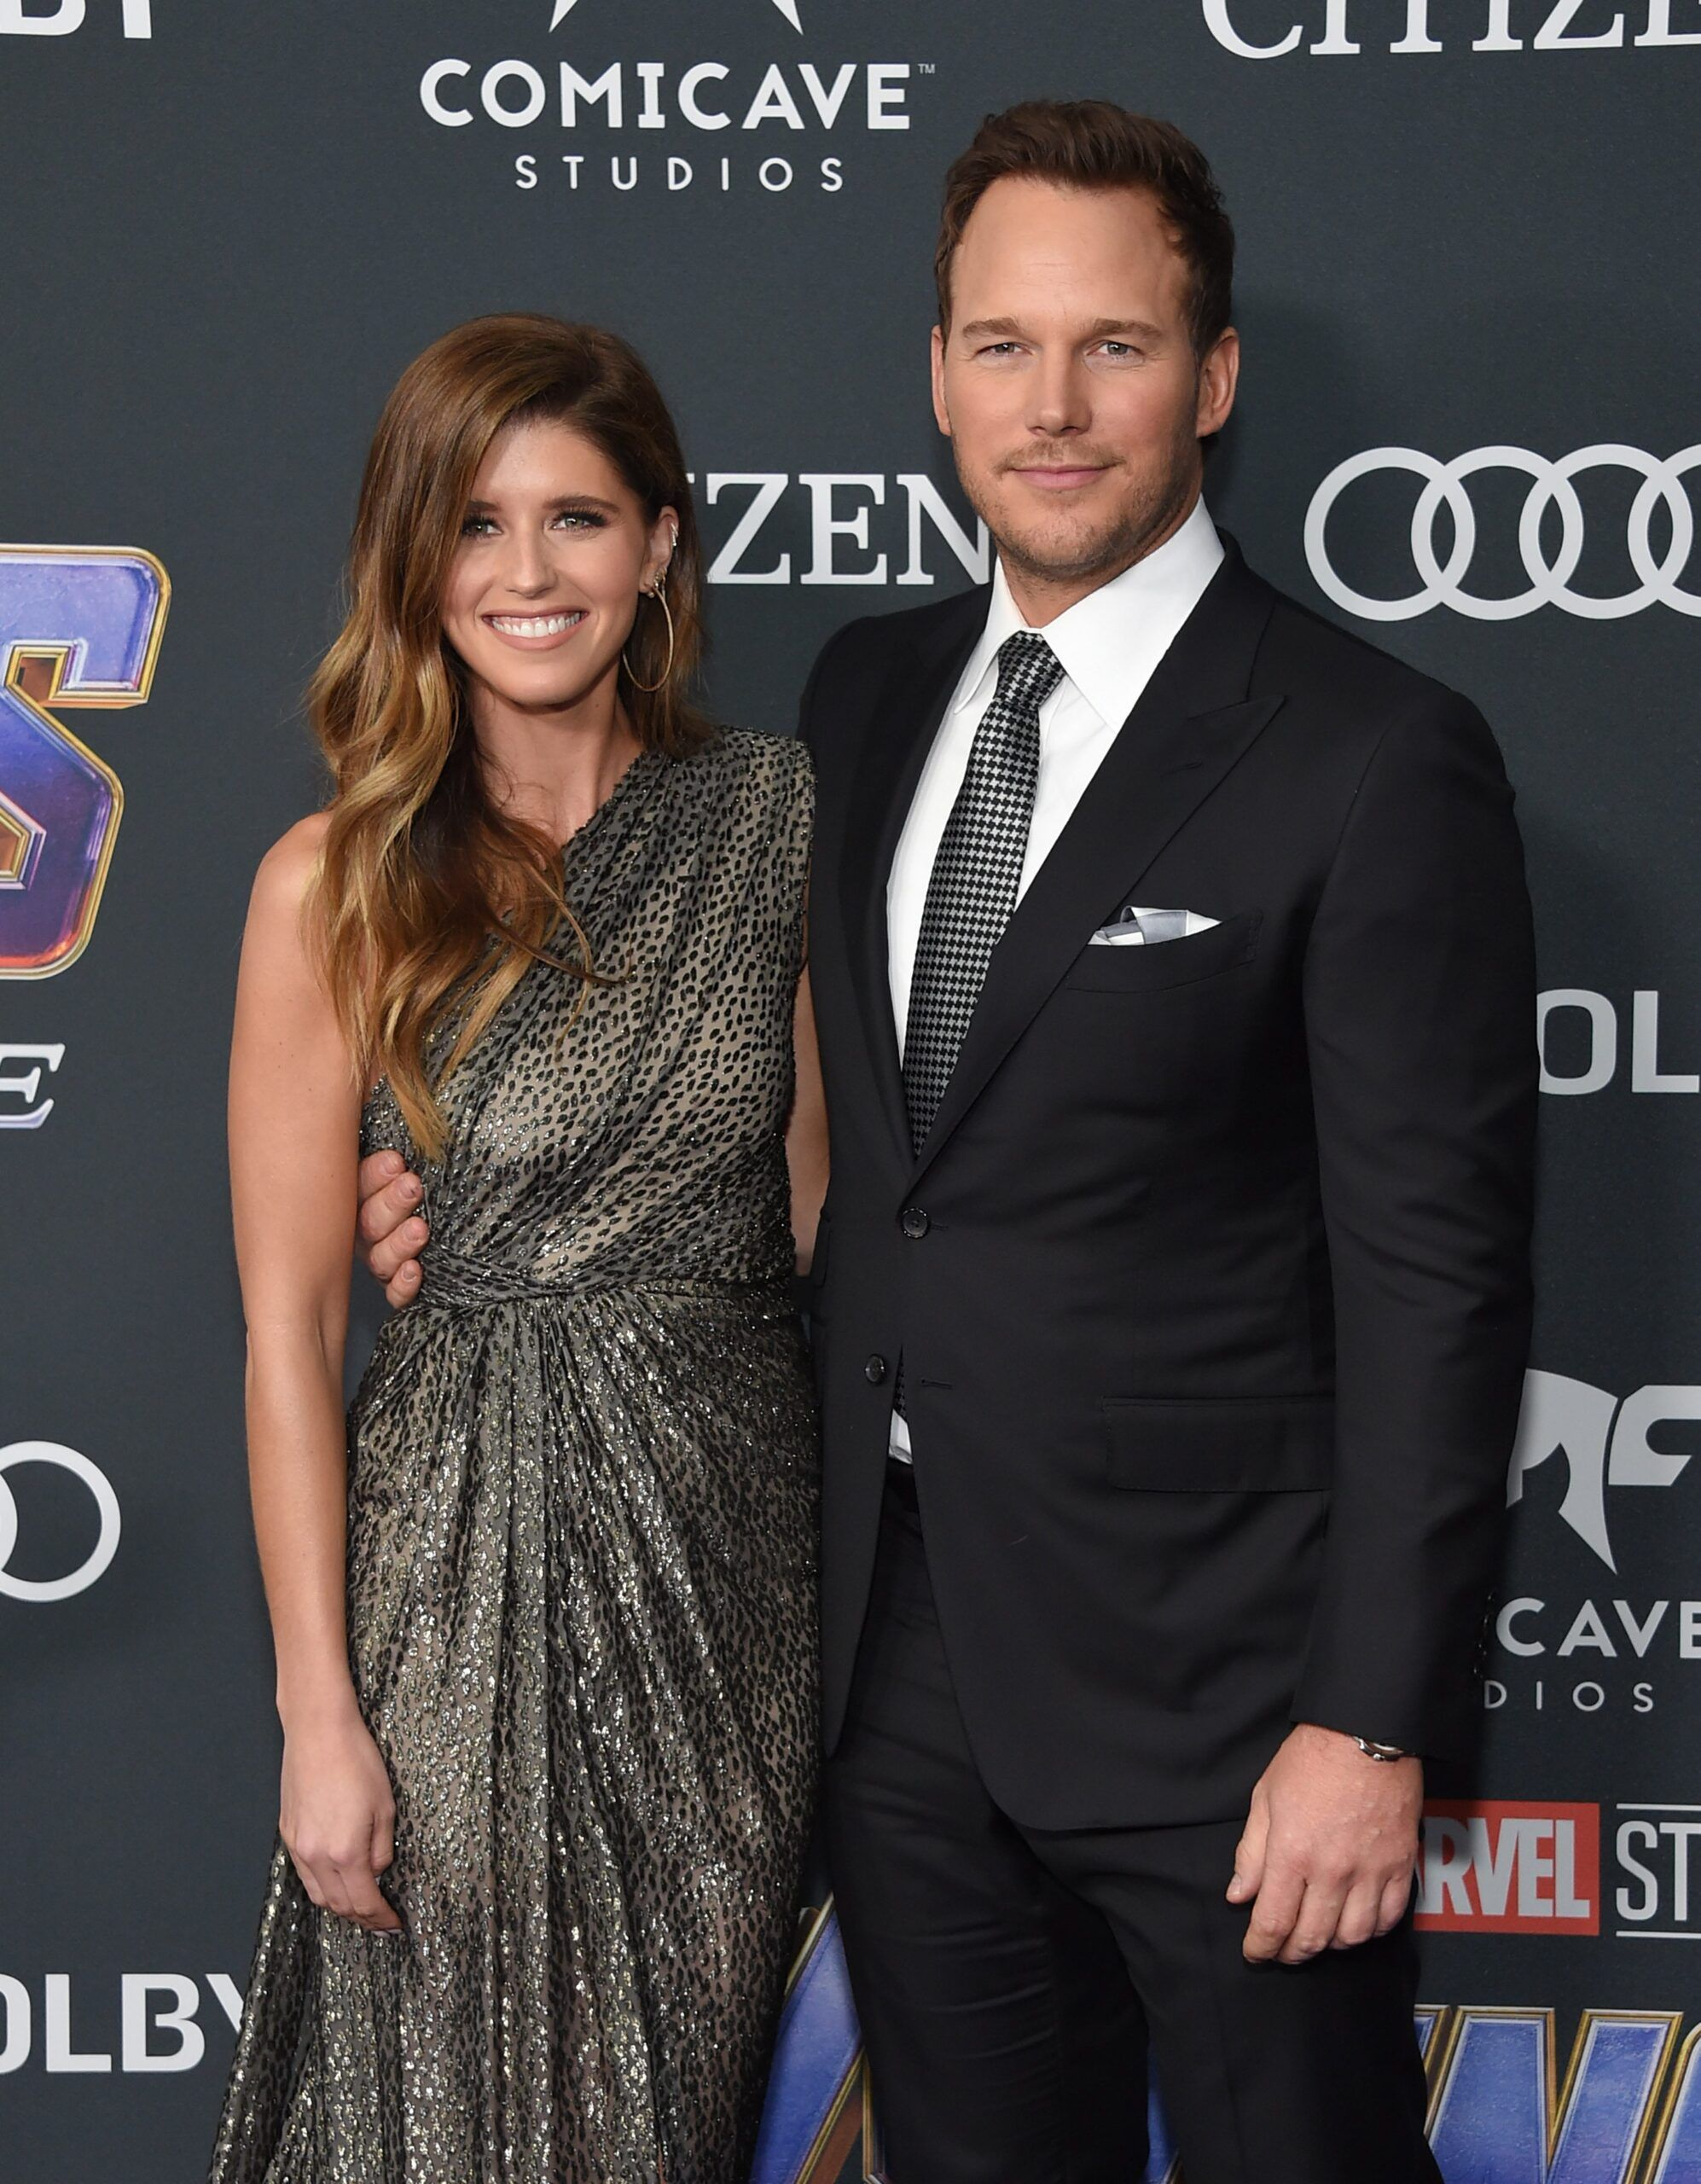 Katherine Schwarzenegger, Robert Downey Jr. And Mark Ruffalo Defend Chris Pratt After He Is Dubbed 'Worst Hollywood Chris'